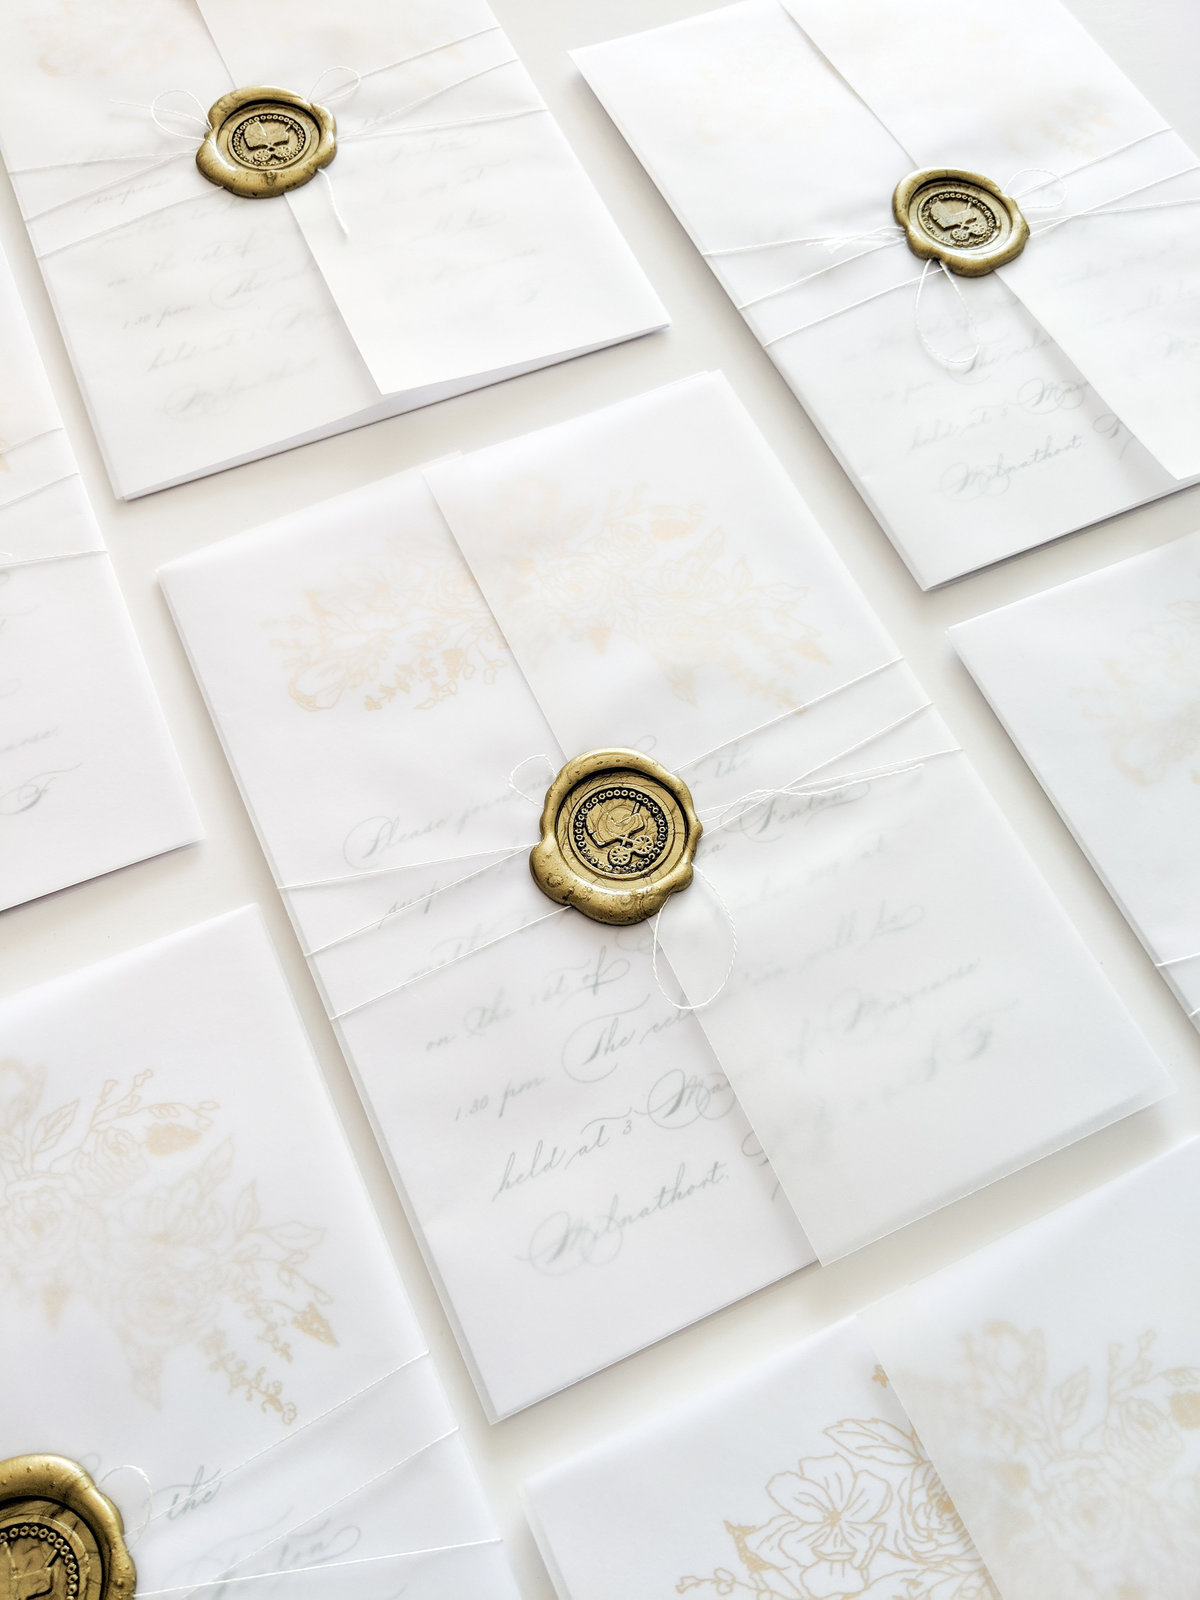 Wax seal baby shower invitations